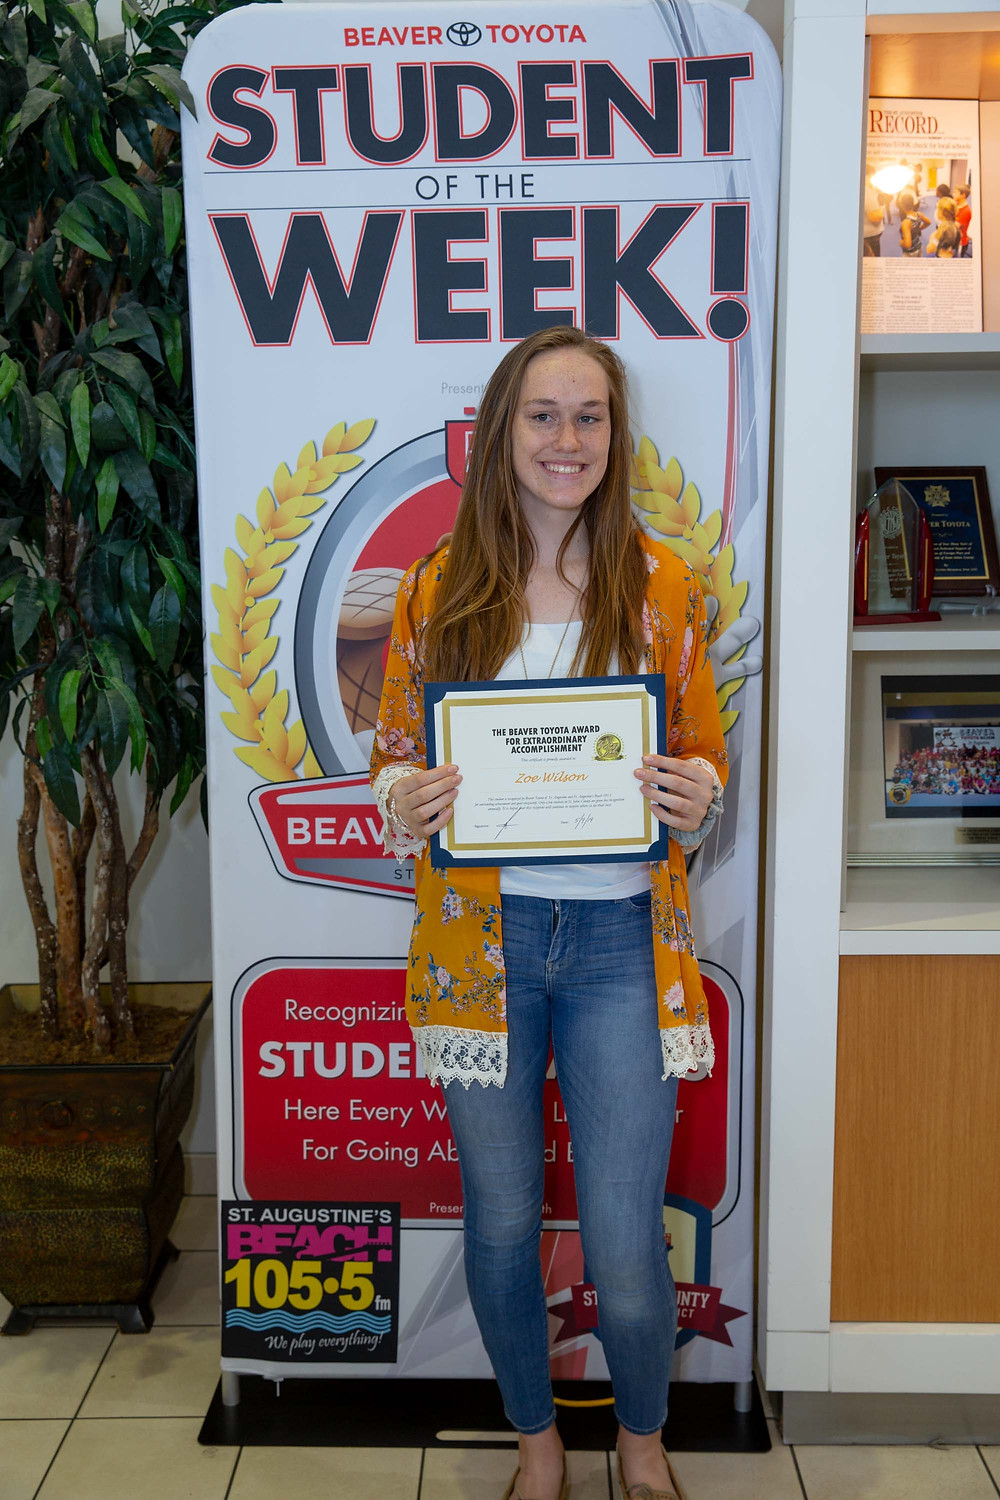 Zoe Wilson holding Student of the Week certificate in front of Beaver Toyota banner.